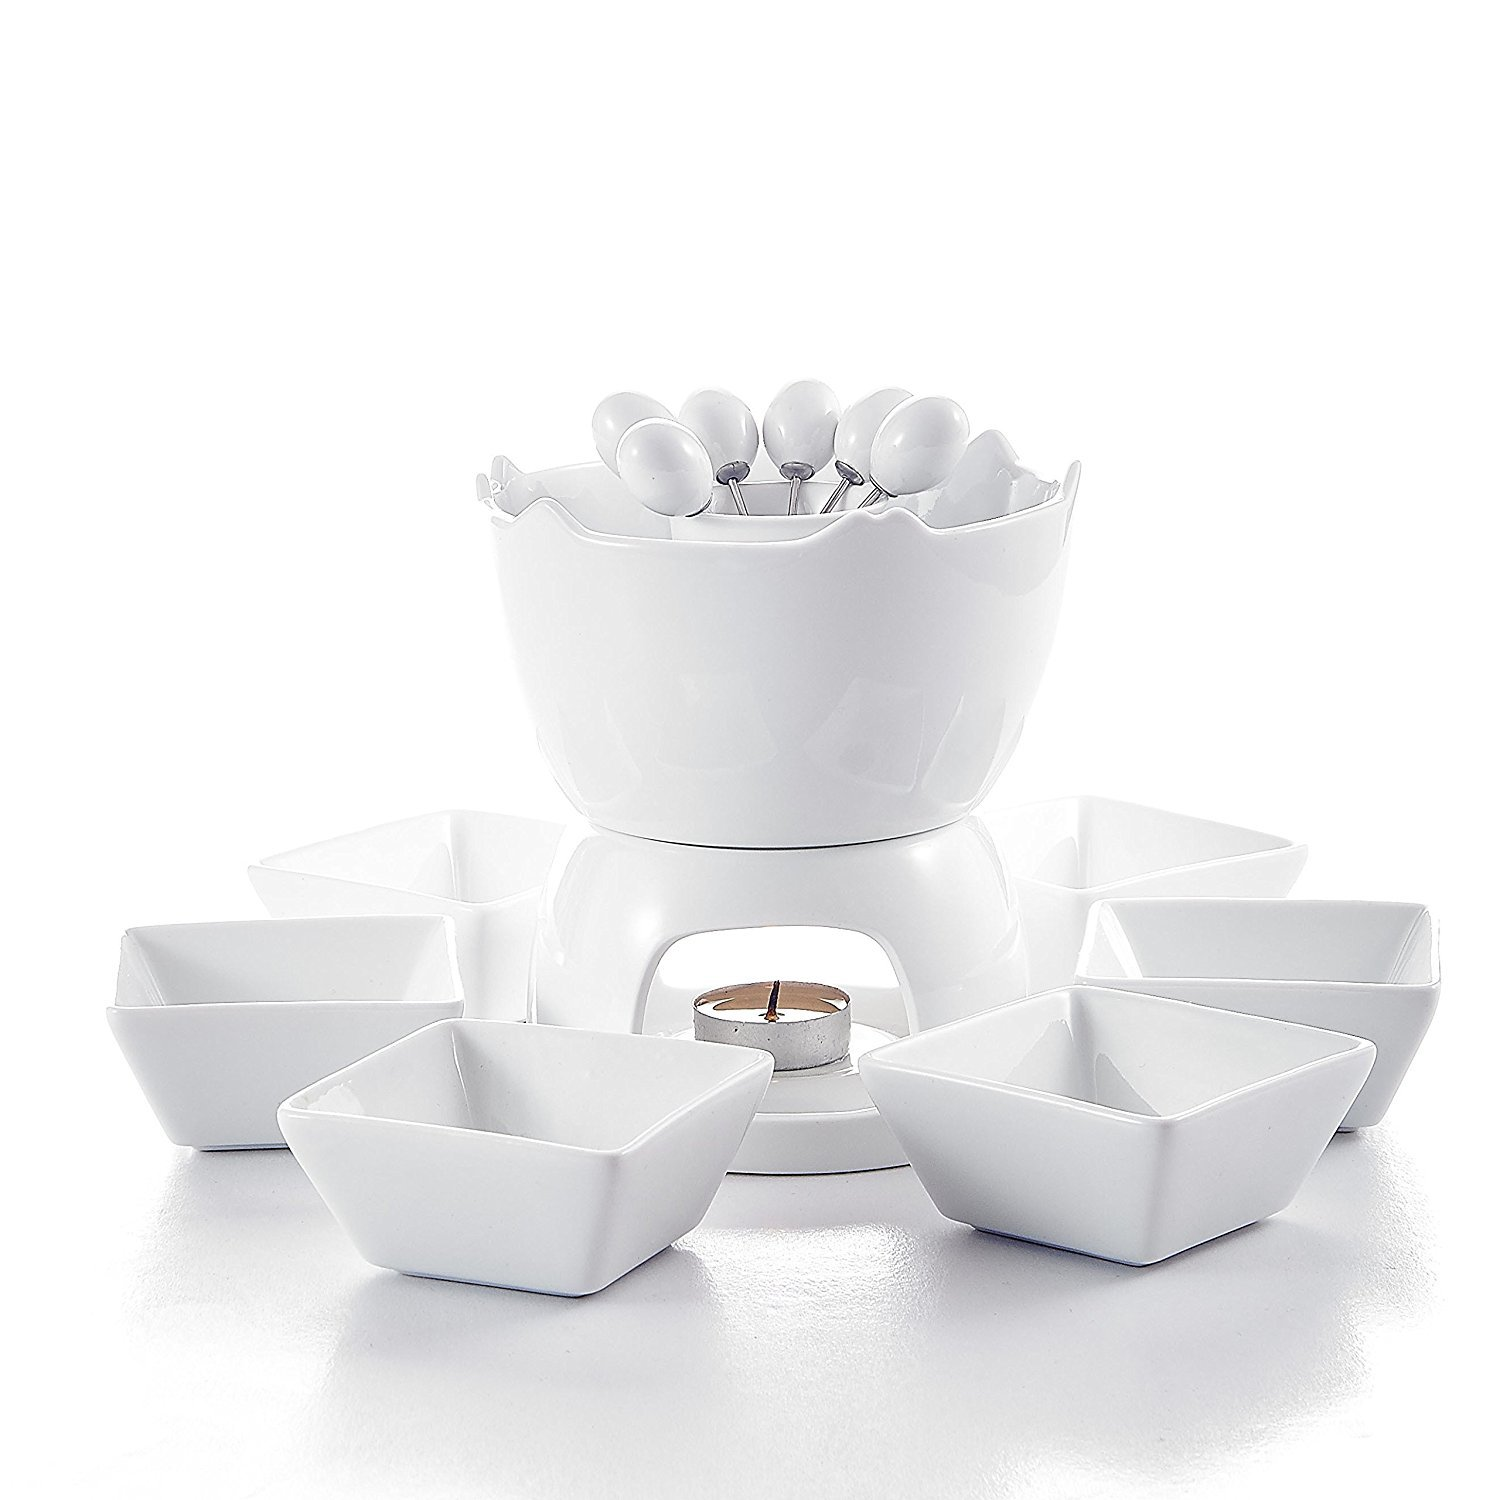 Malacasa Series Favor, Two-layer Ceramic Porcelain Tealight Candle Cheese Butter Chocolate Fondue Set with 6 Dipping Bowls 6 Forks, Ivory White